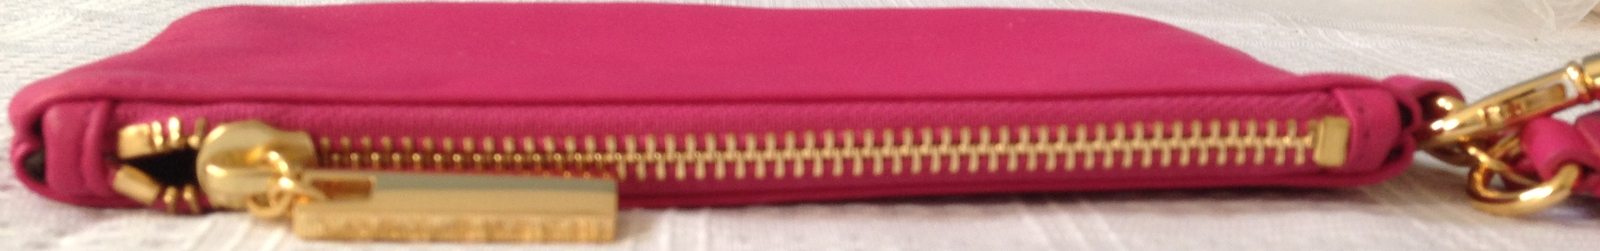 Torry  Burch Fashion Design Clutch Purse, Leather, Pink  image 5